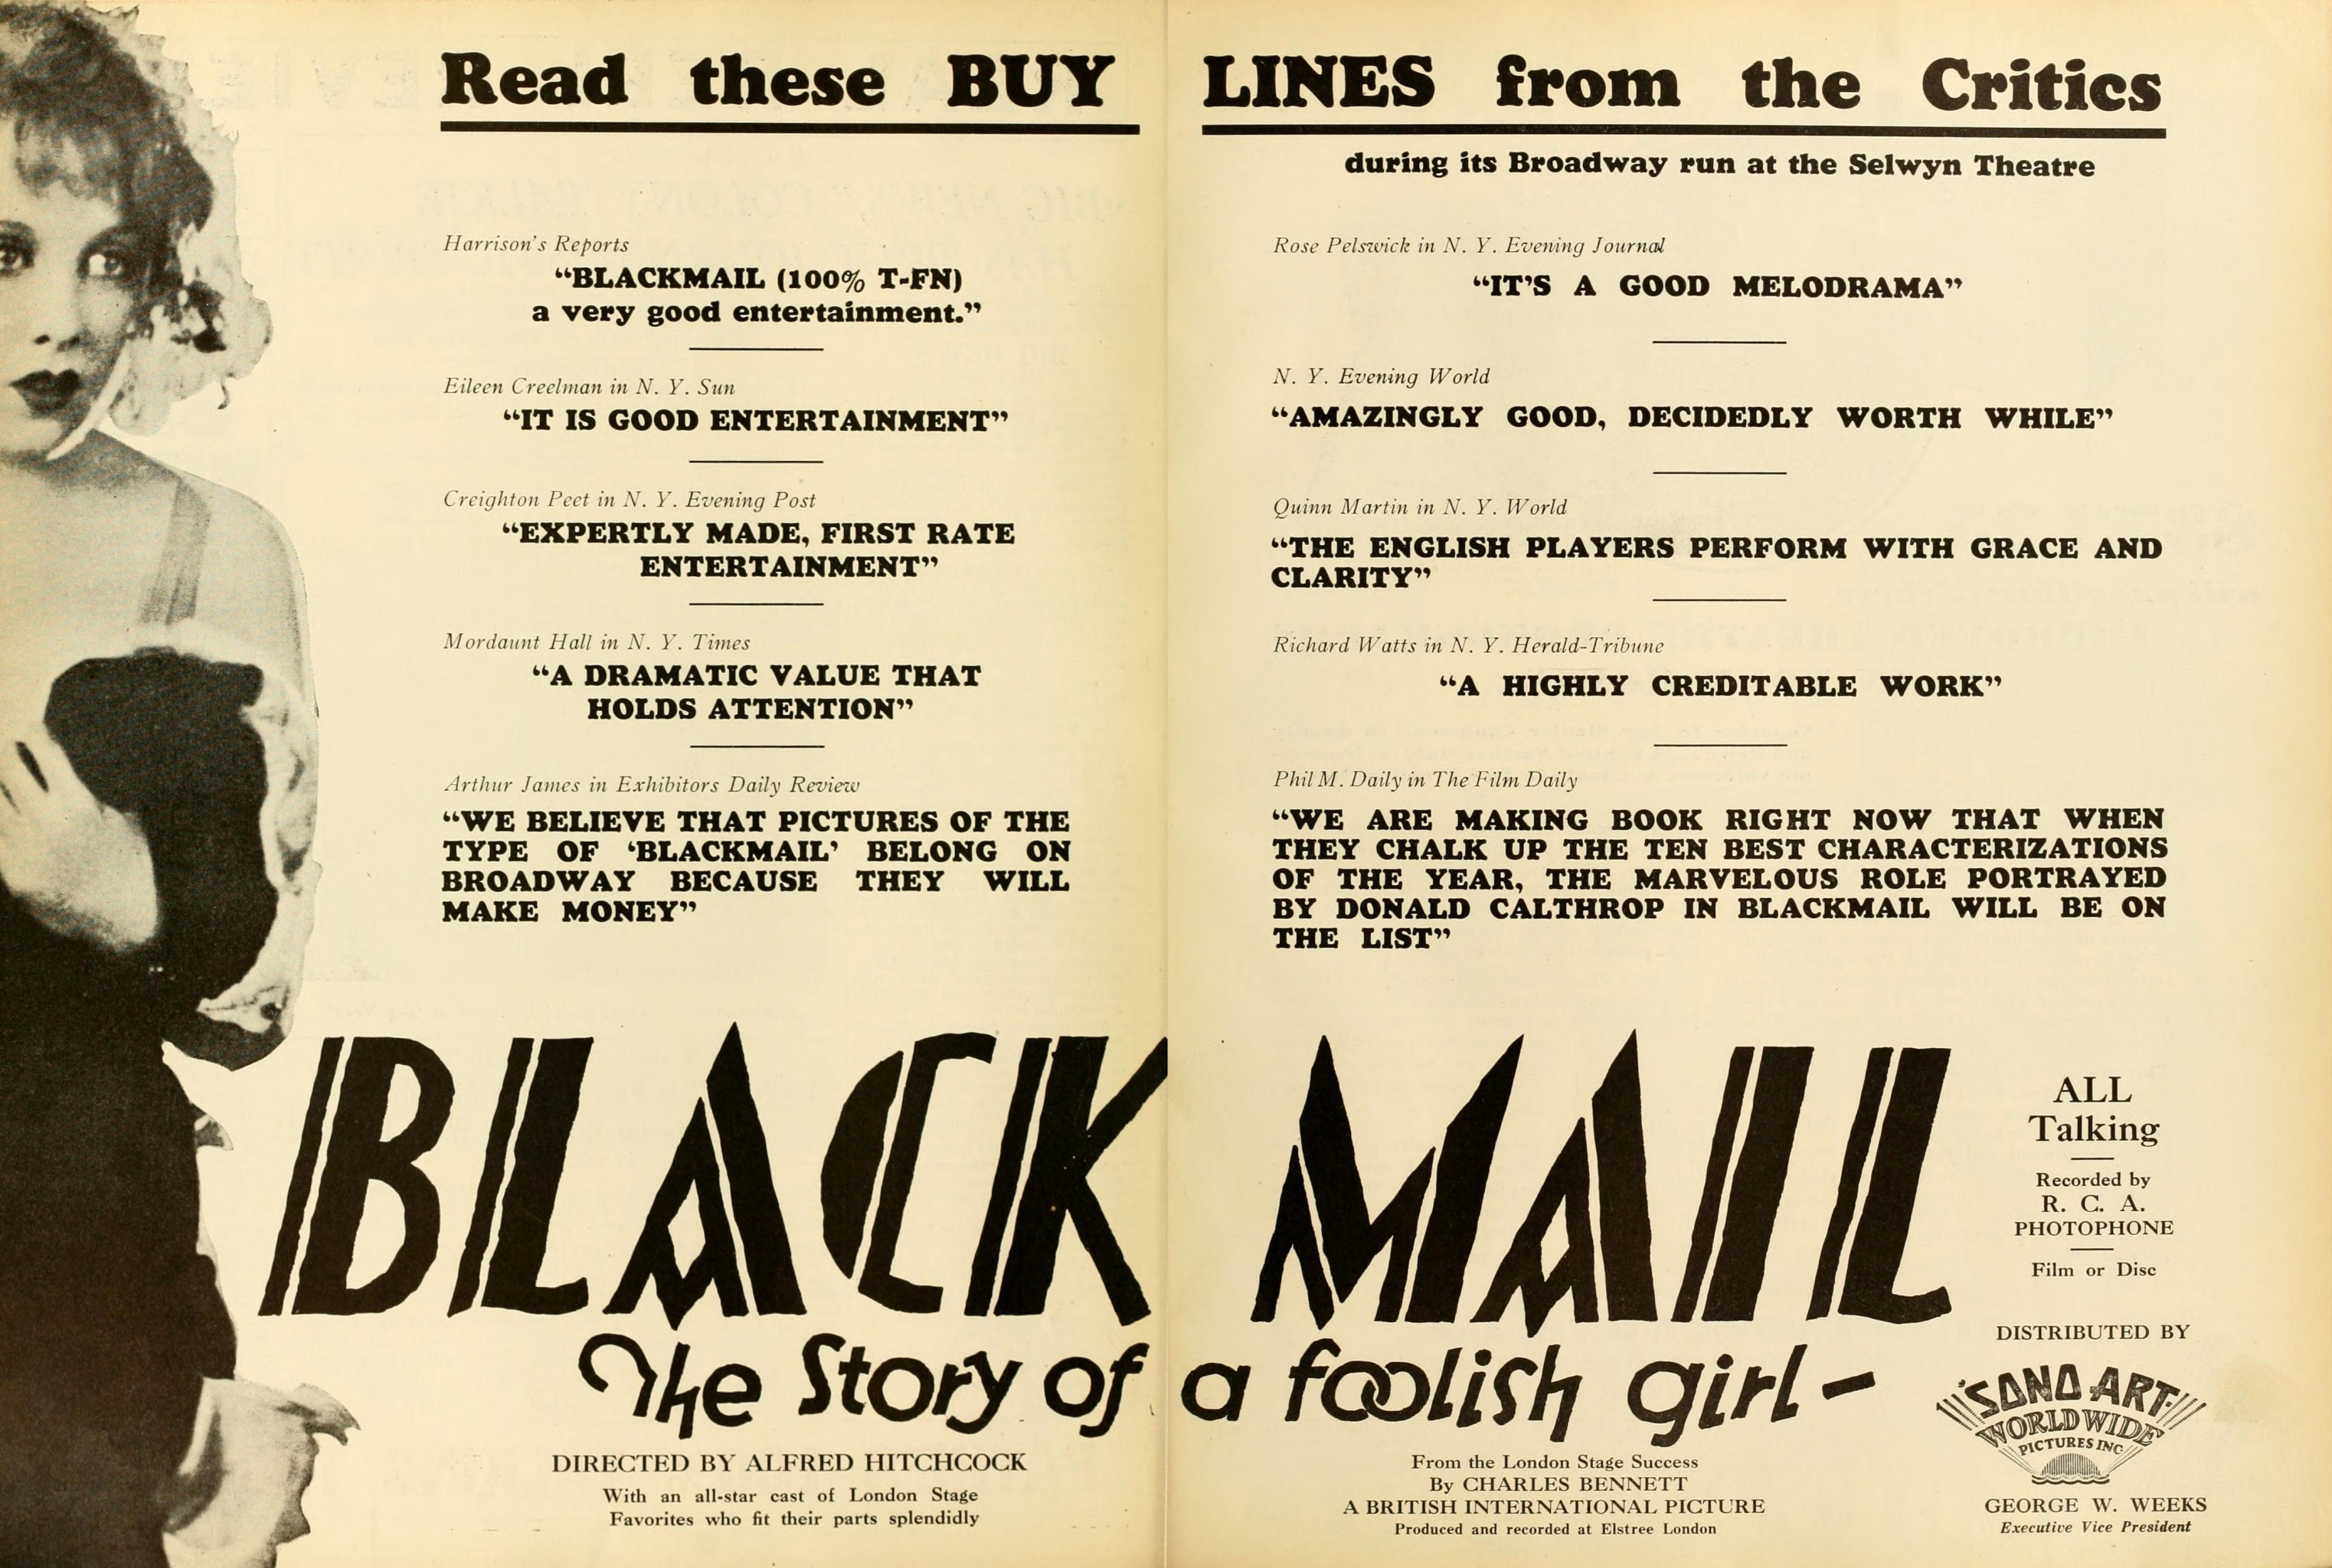 US Motion Picture News advert, Oct 19, 1929